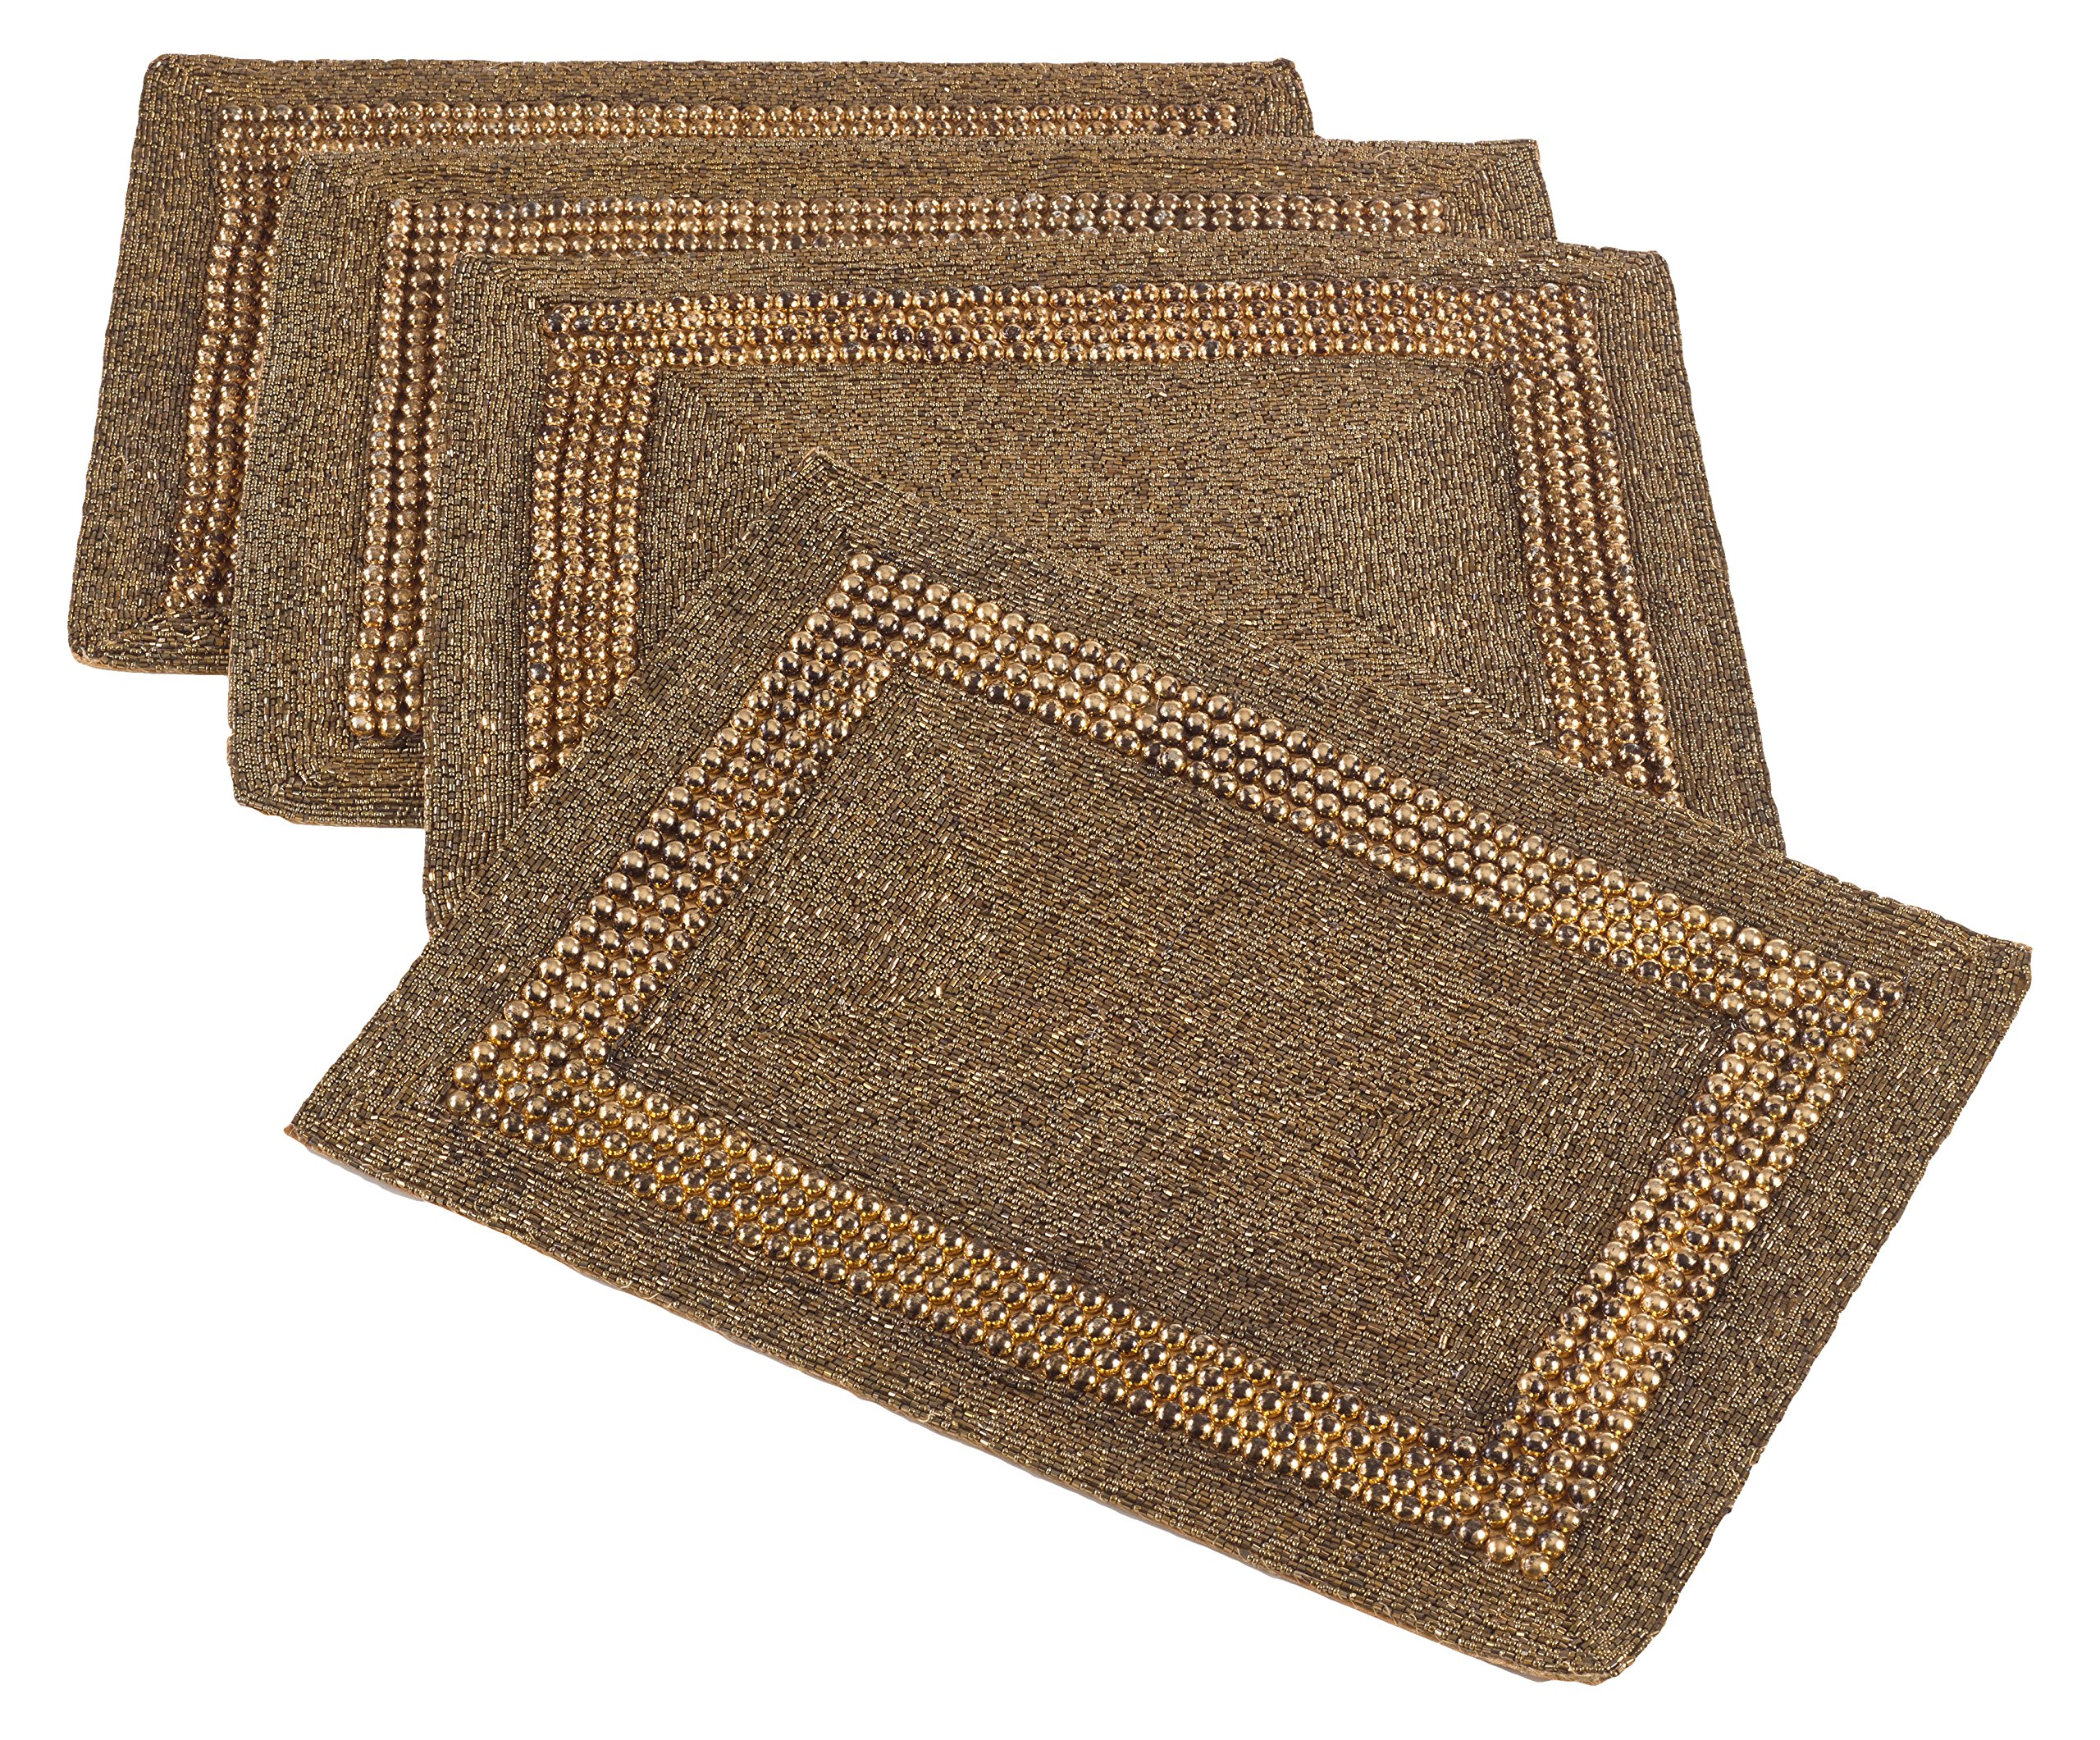 Saro LifeStyle 3270.BZ1318B  Beaded Design Placemat , Bronze, 13''x19'' (Set of 4 pcs)